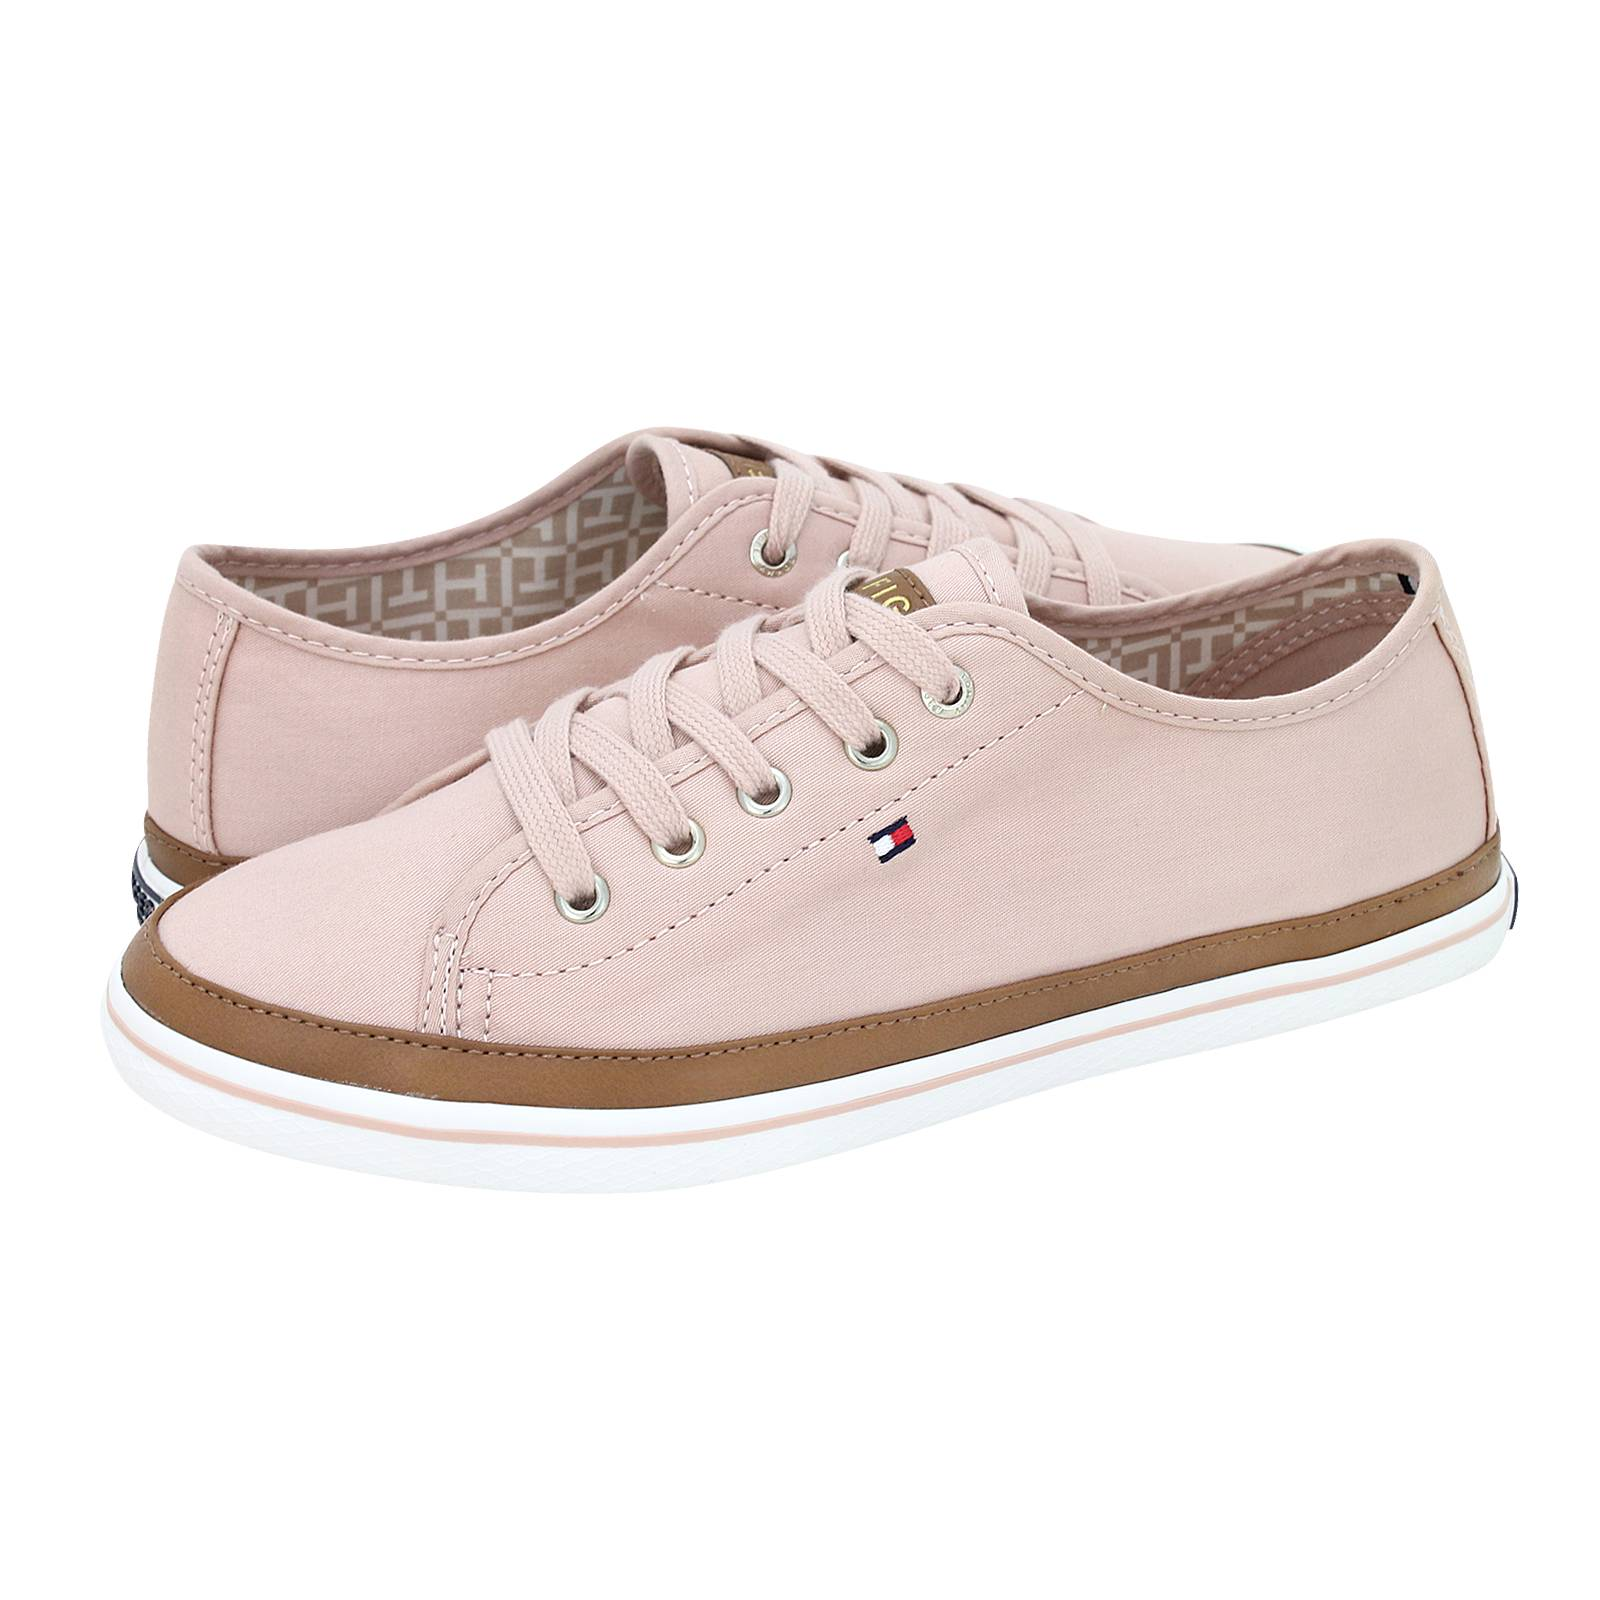 Tommy Hilfiger Iconic Kesha Sneaker casual shoes